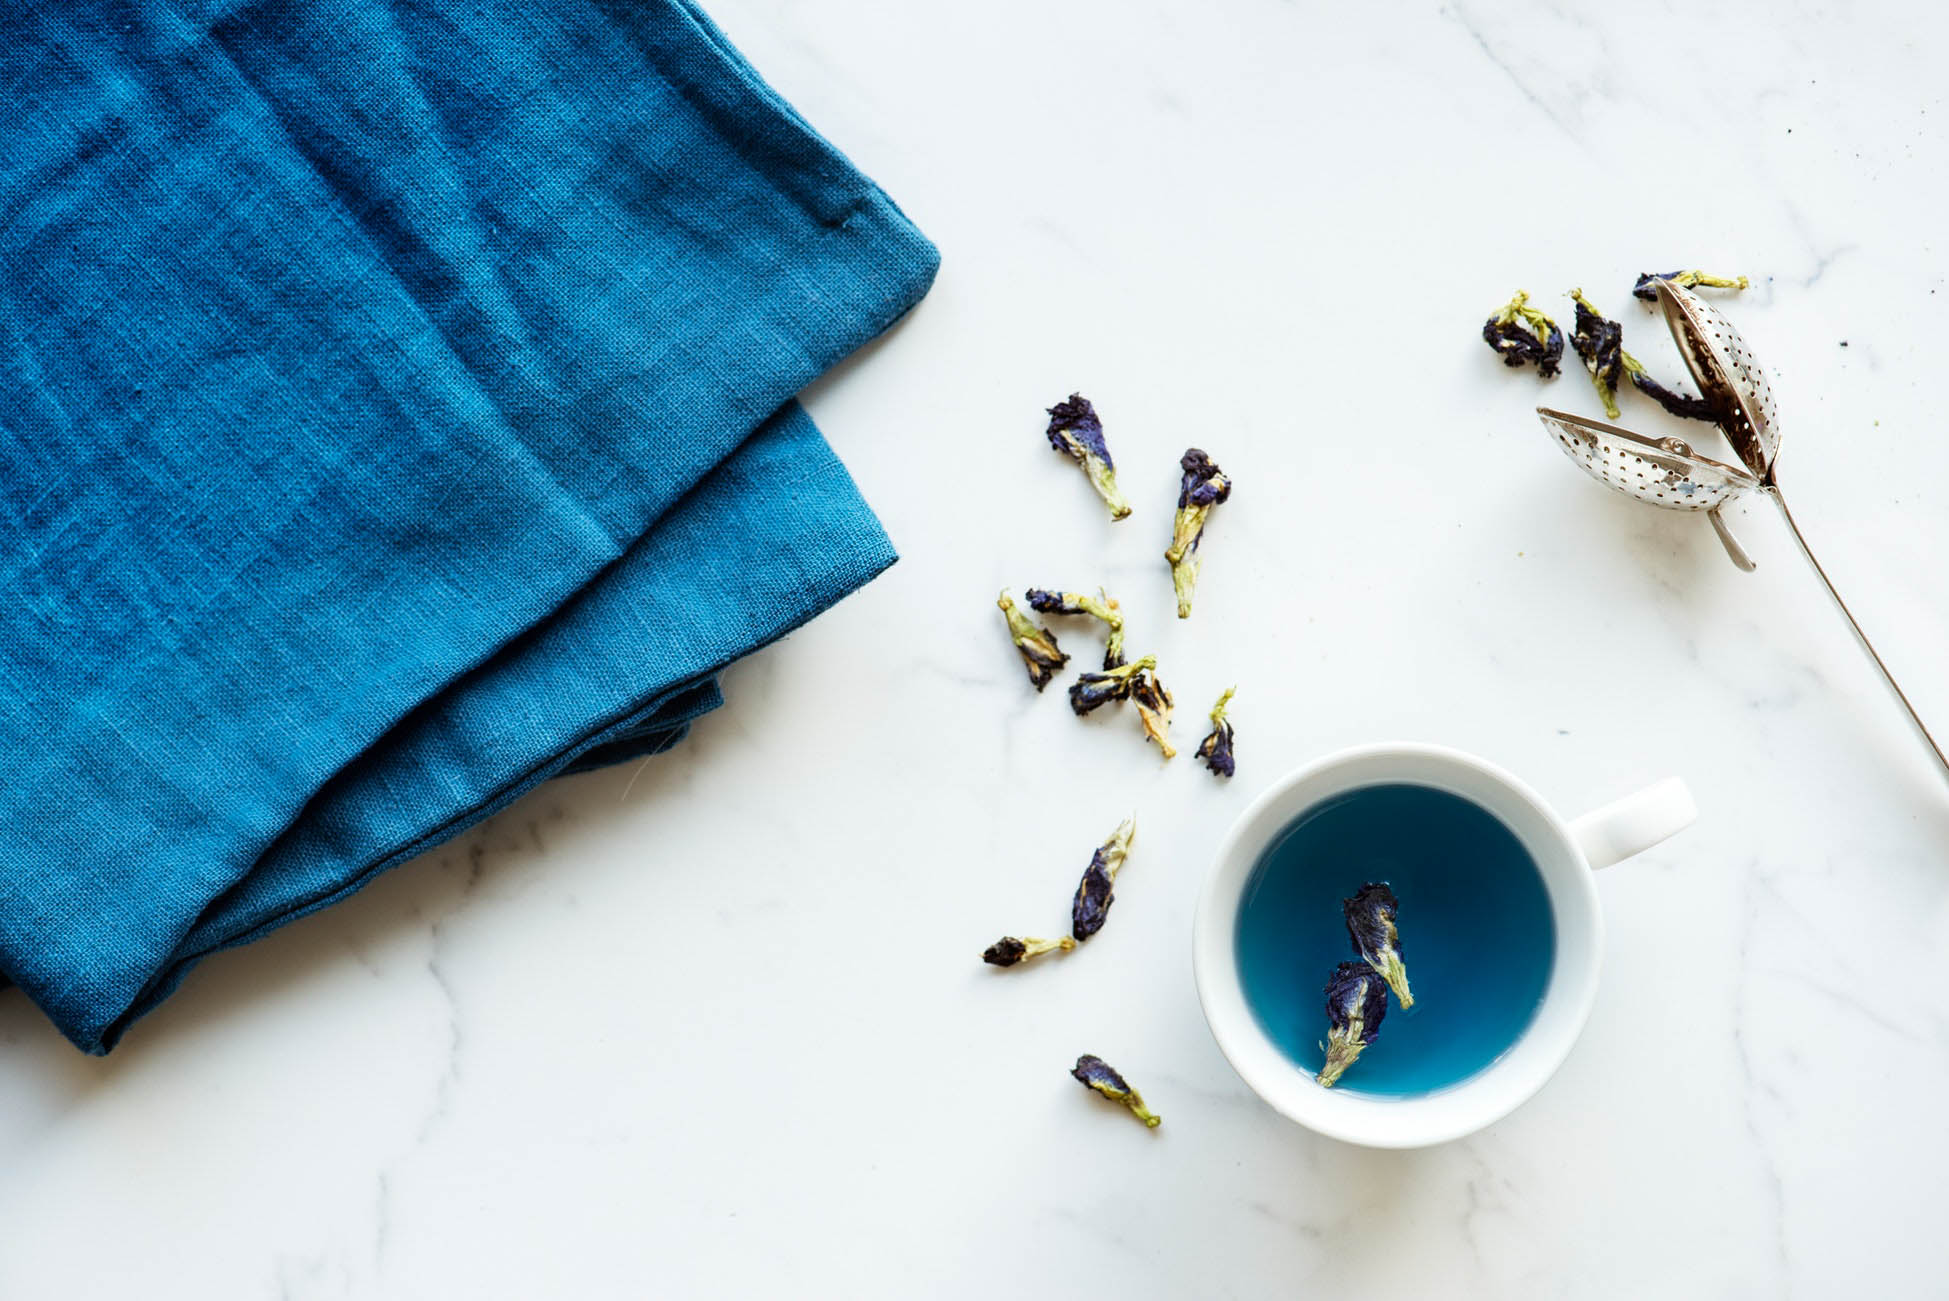 Blue linen with dye flowers